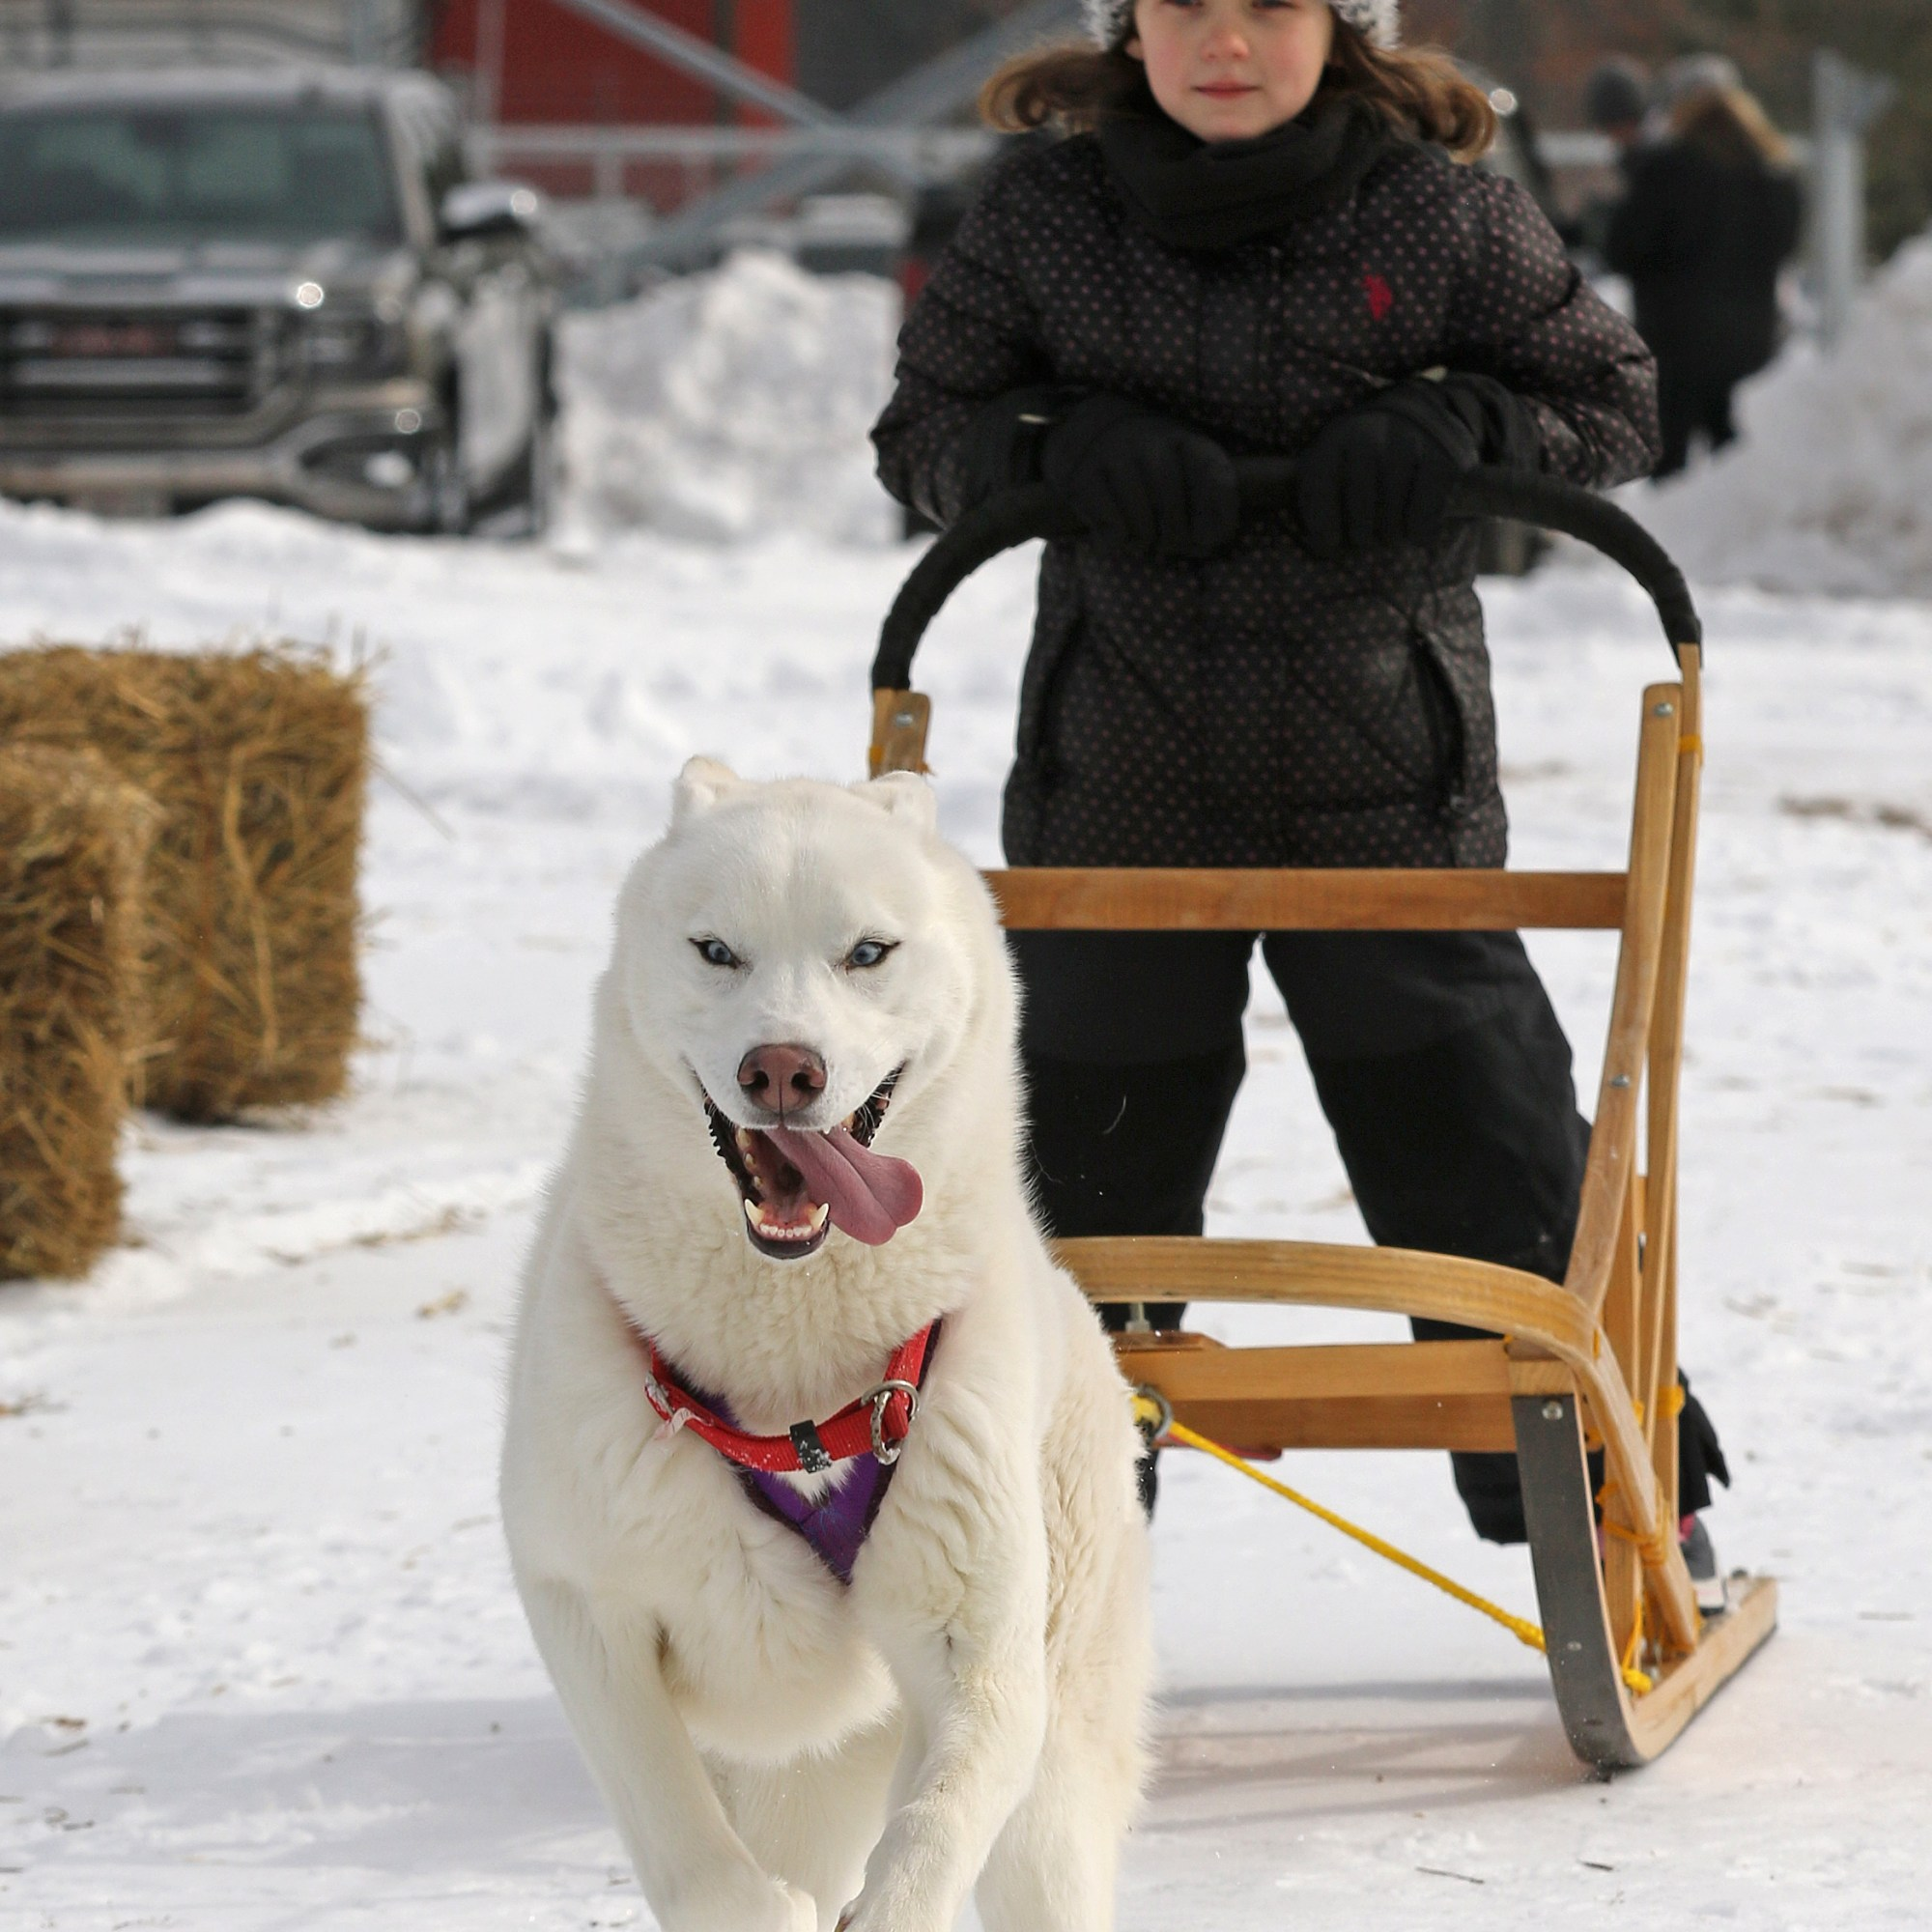 Sled dog with a youth on the sled behind the dog as dog runs for finish line